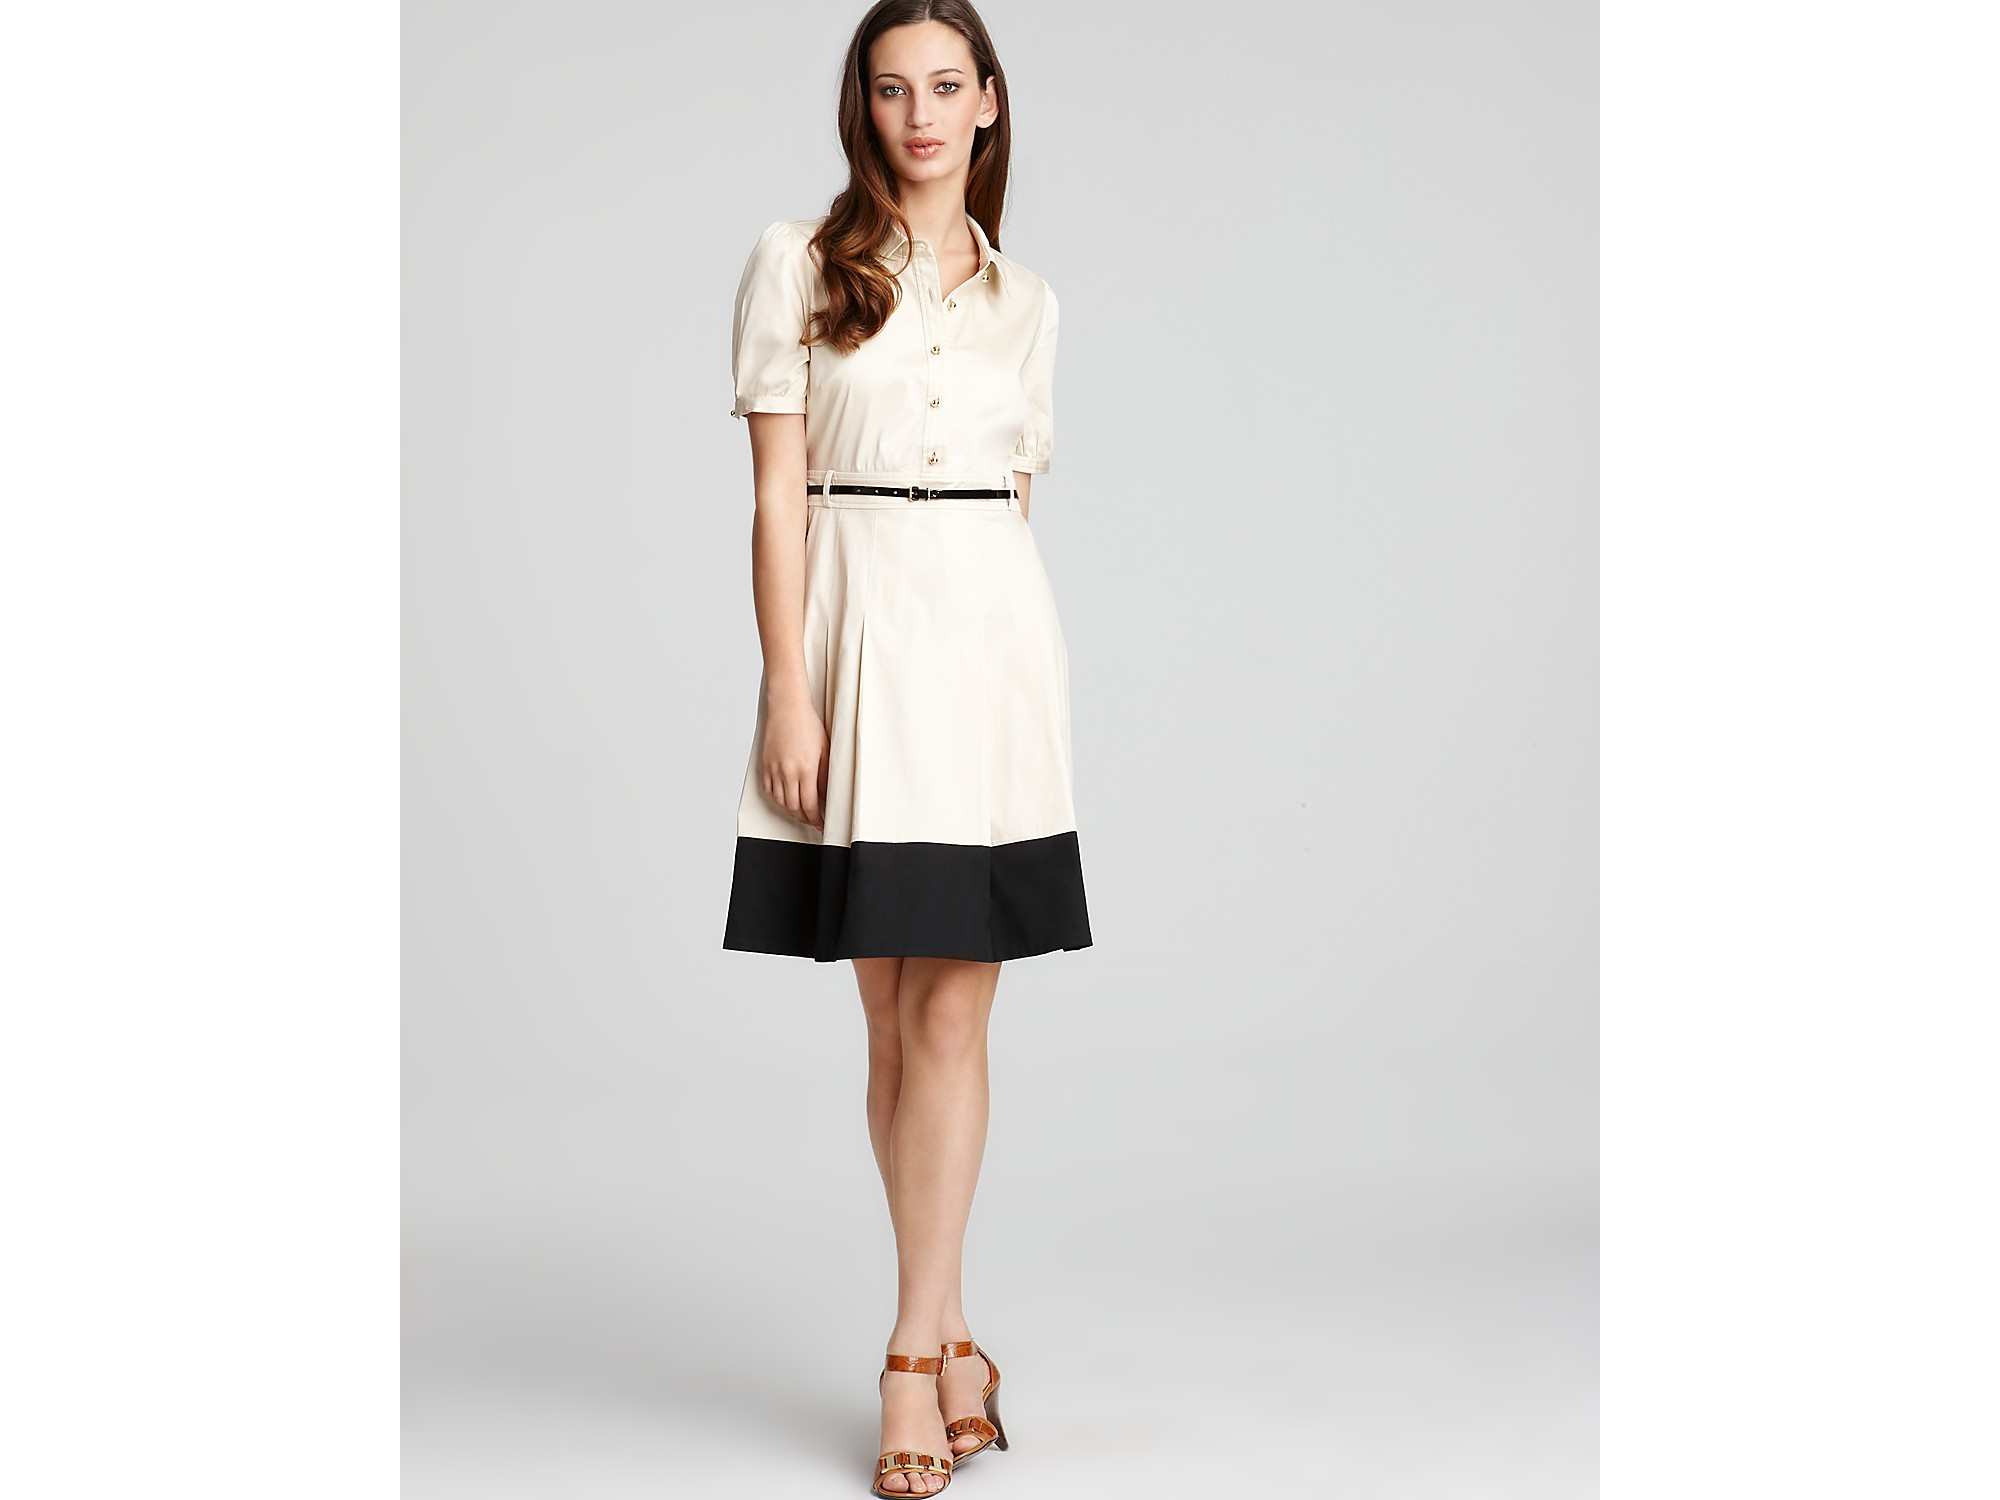 Kate Spade New York Jeanette Belted Shirt Dress In Natural